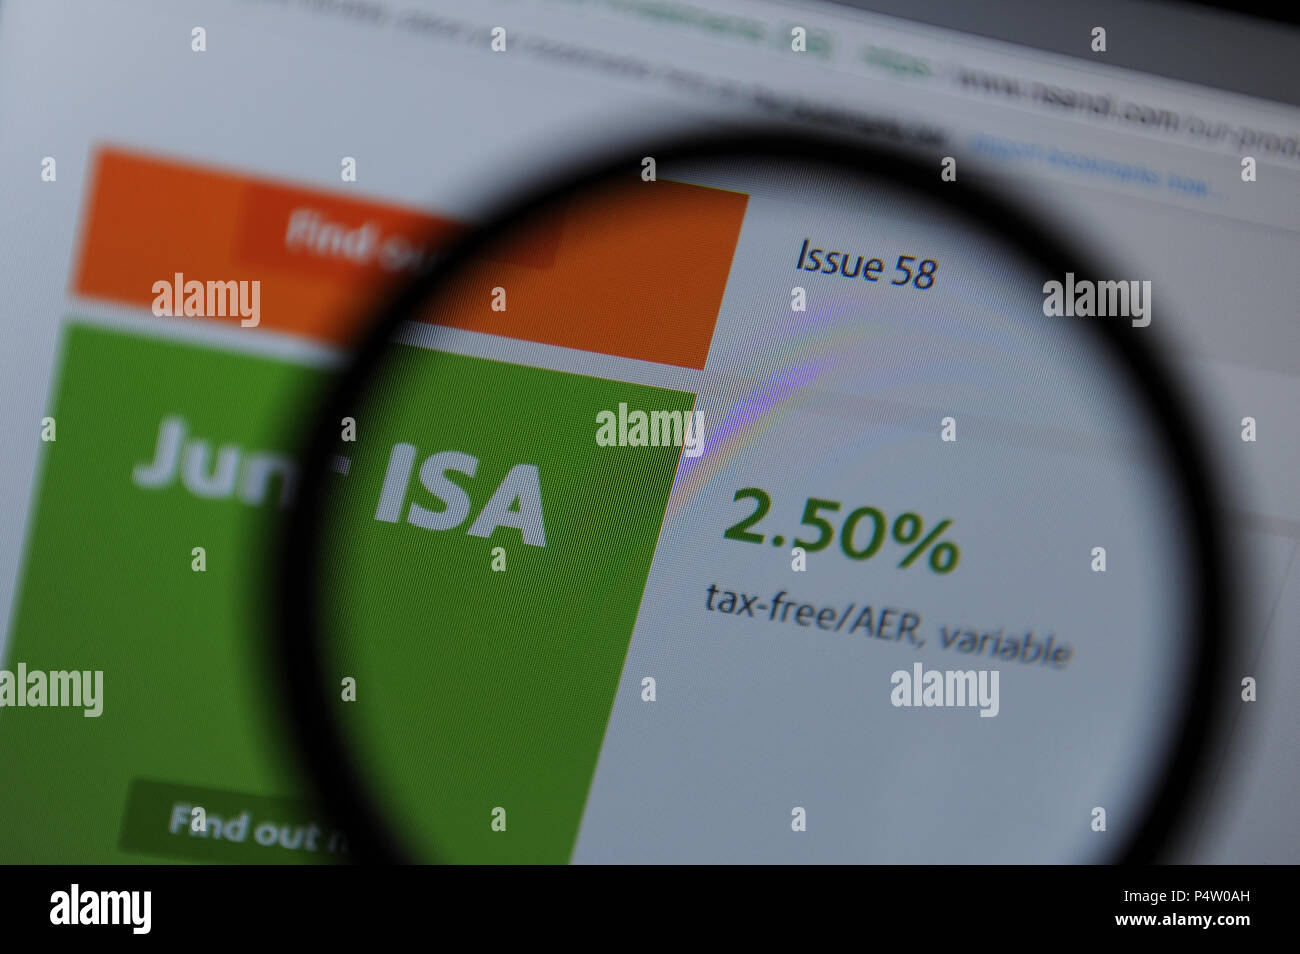 National Savings and Investments - Stock Image